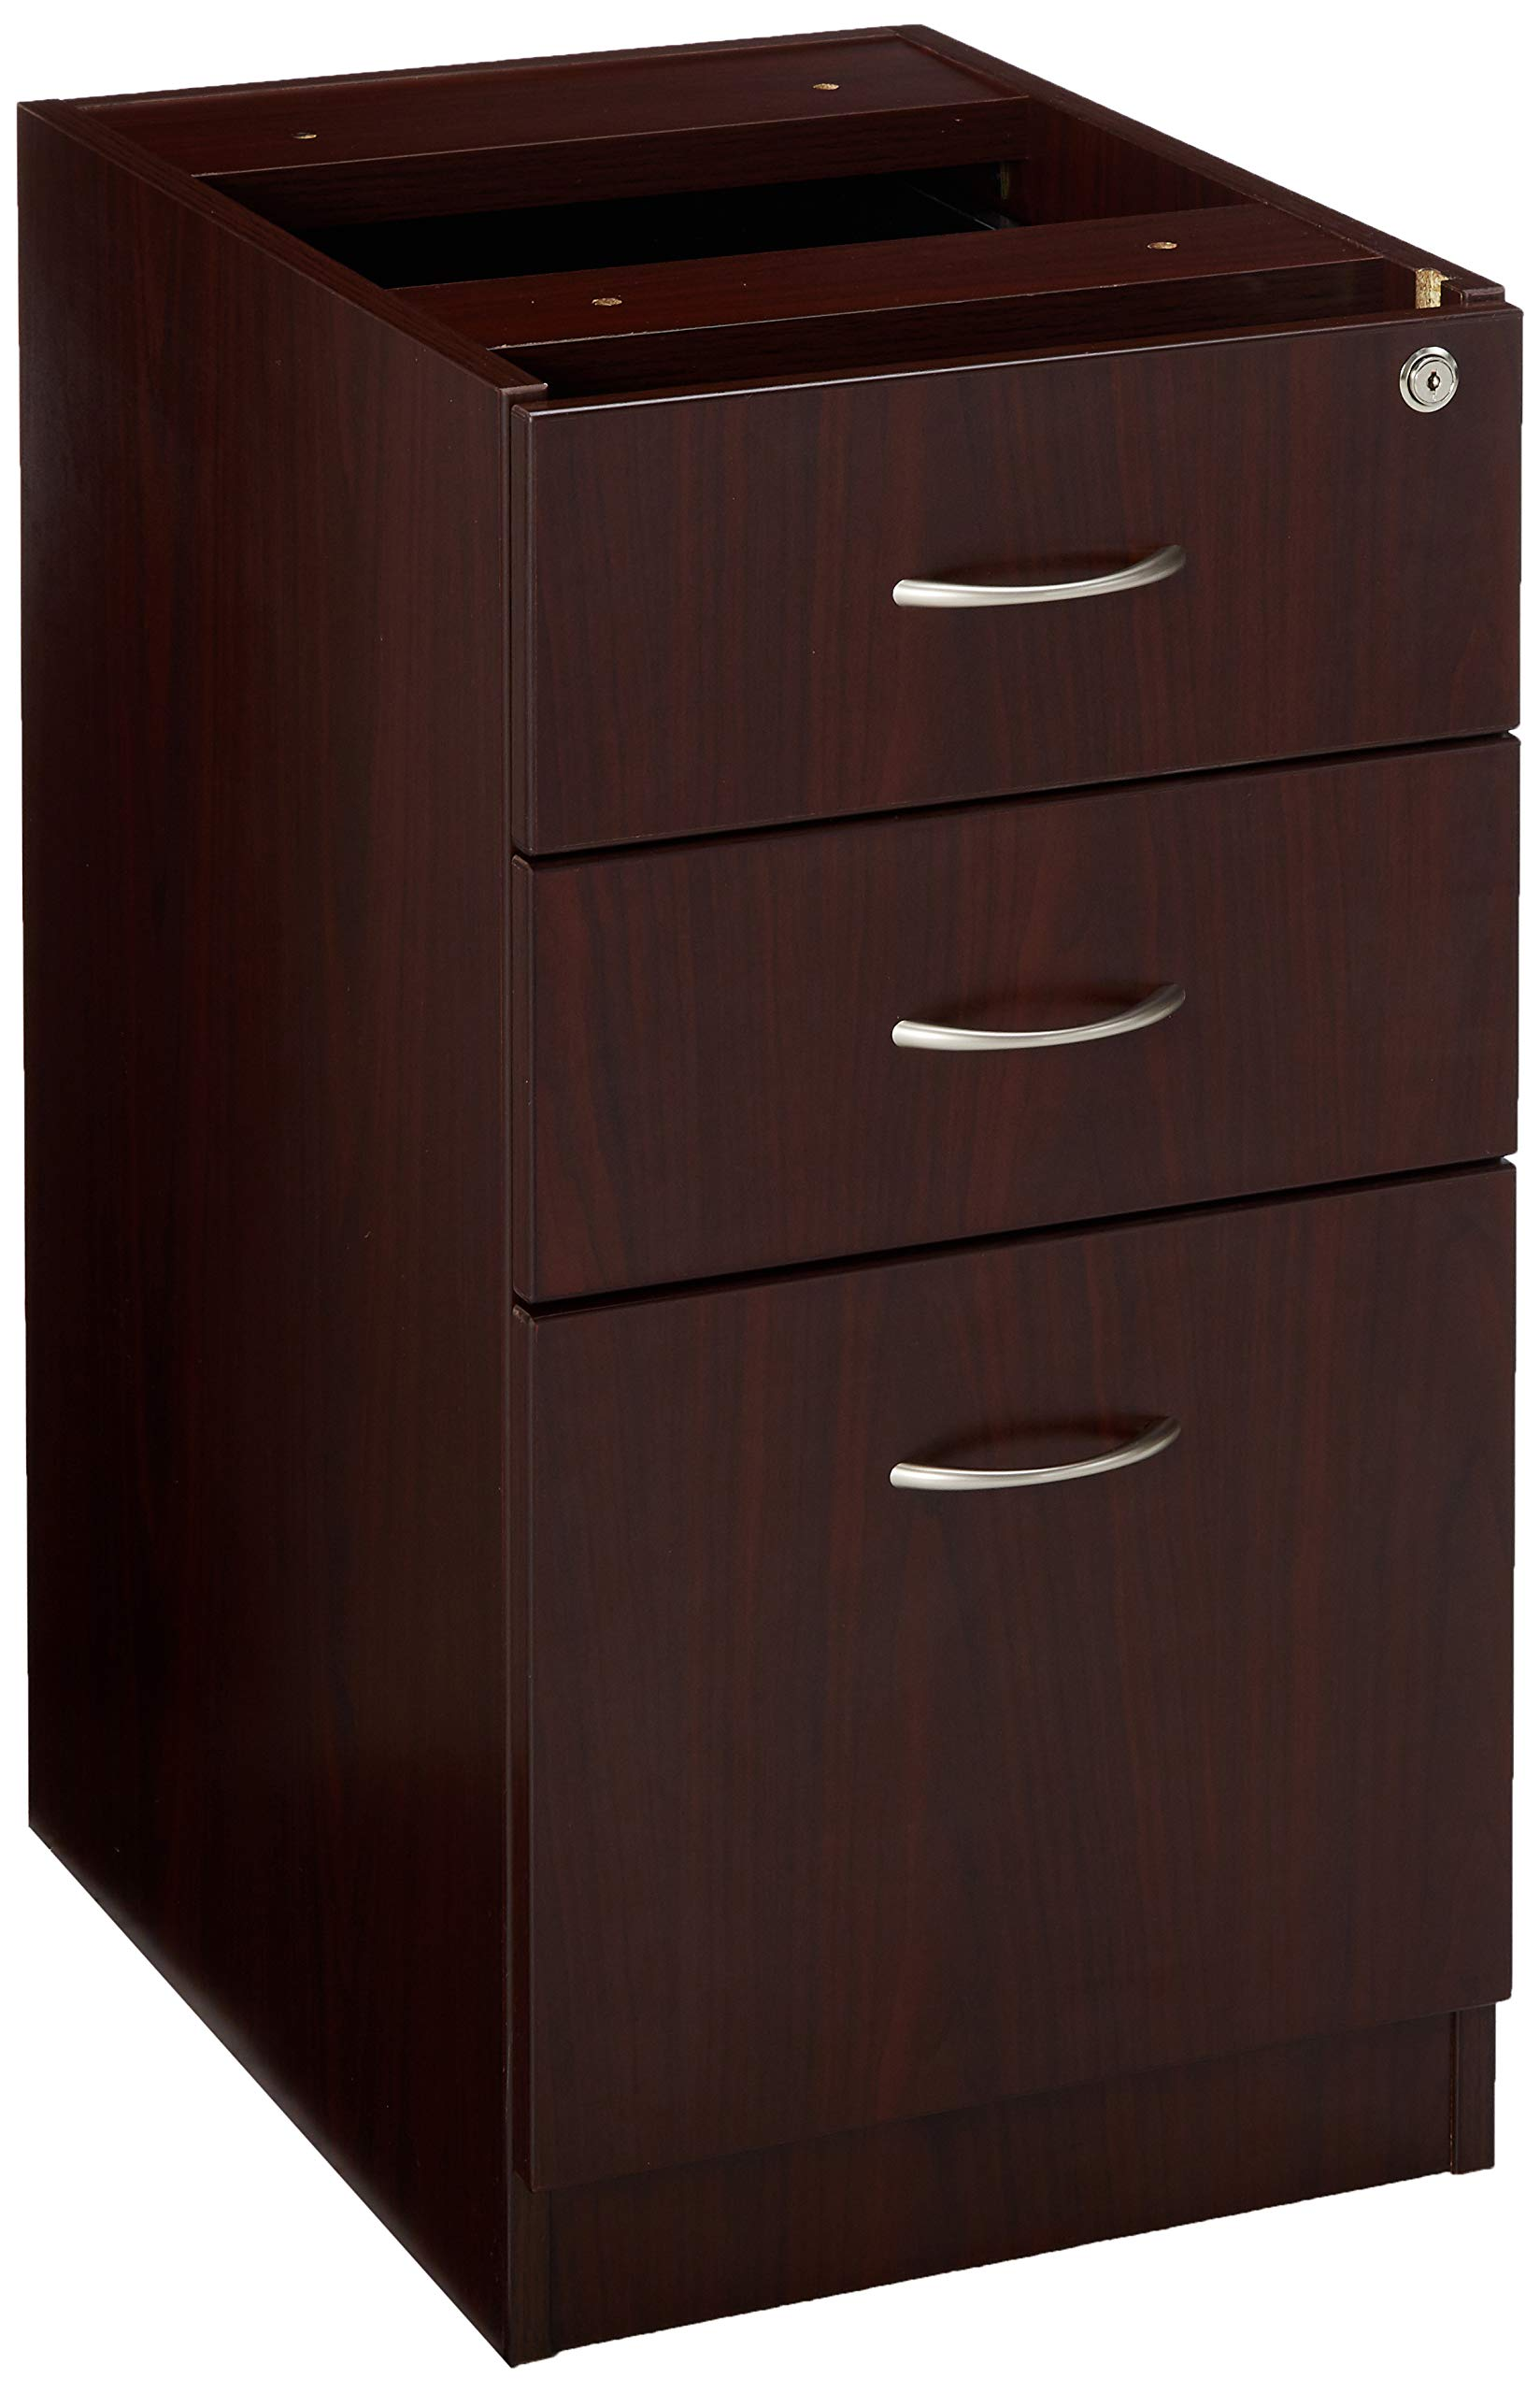 Lorell LLR69603 69000 Series Free Standing Fixed Pedestals, Mahogany by Lorell